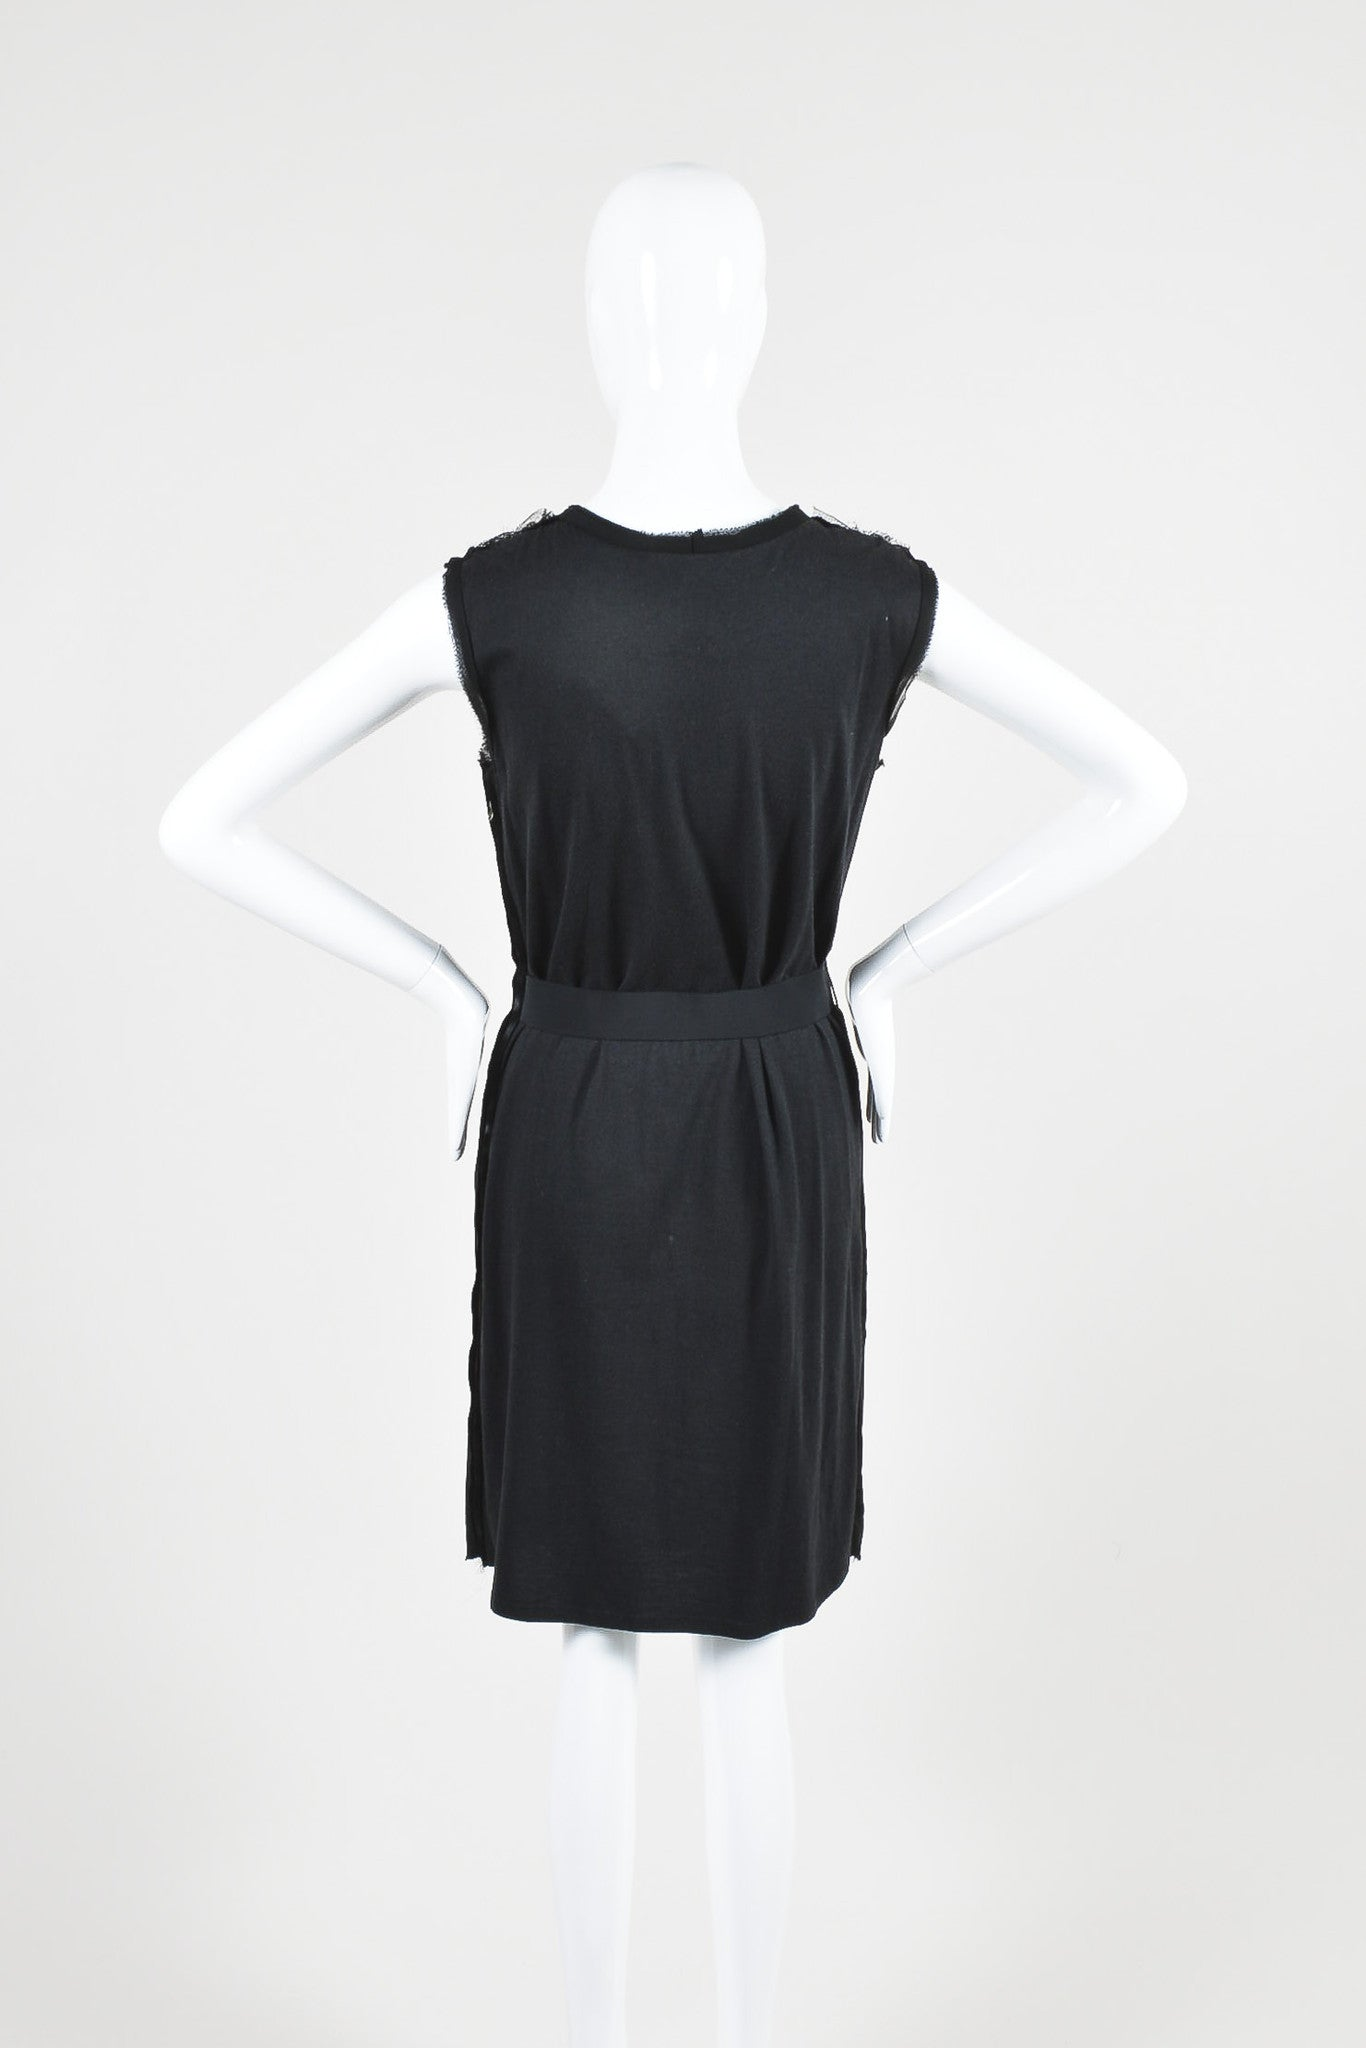 Lanvin Black Cotton Knit Chiffon Crystal Embellished Belted Sleeveless Dress Backview